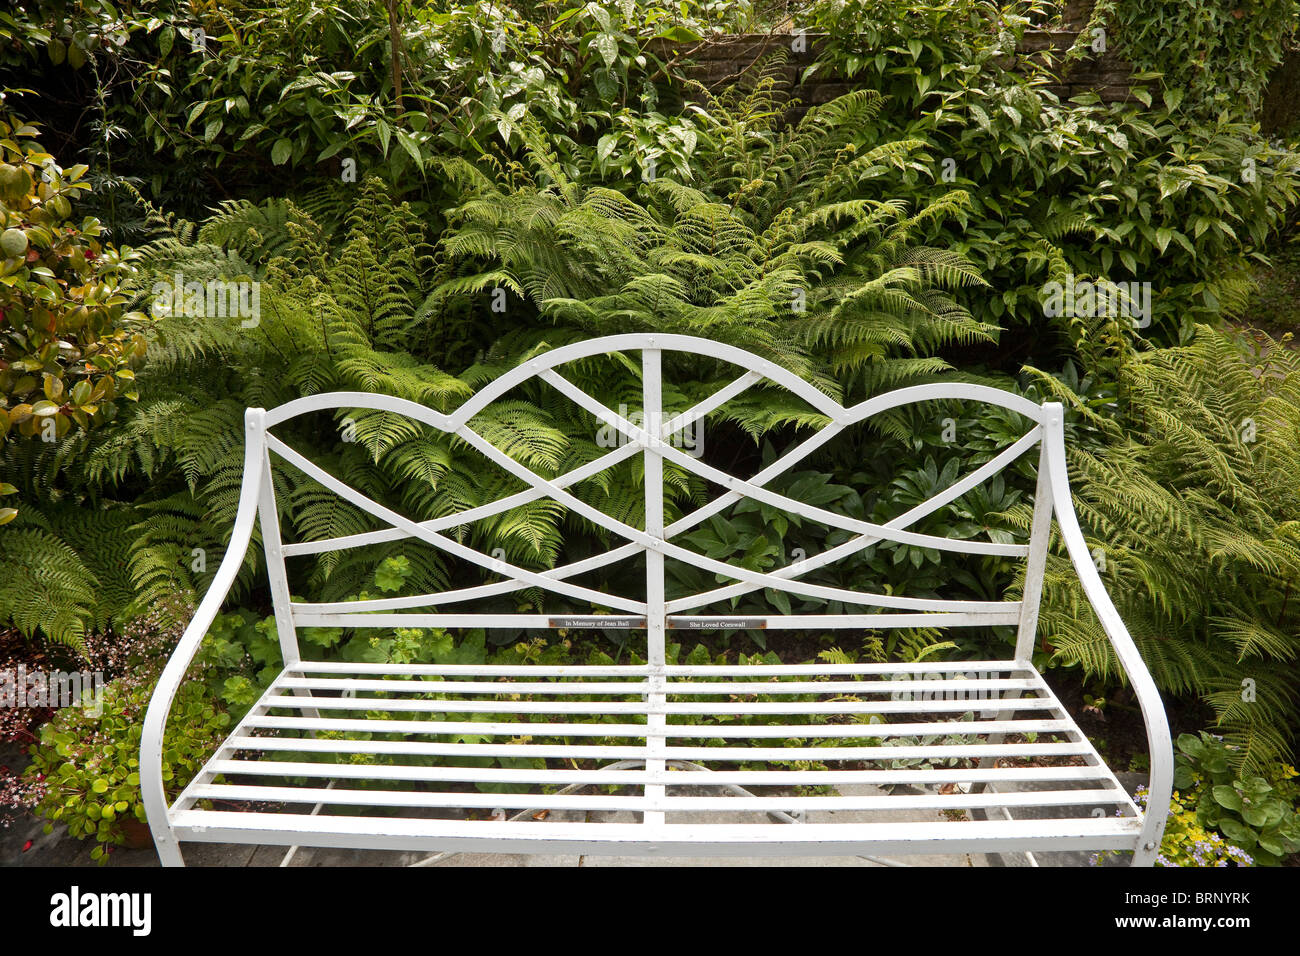 White Metal Ornate Garden Bench, Inviting With A Fern Background   Stock  Image